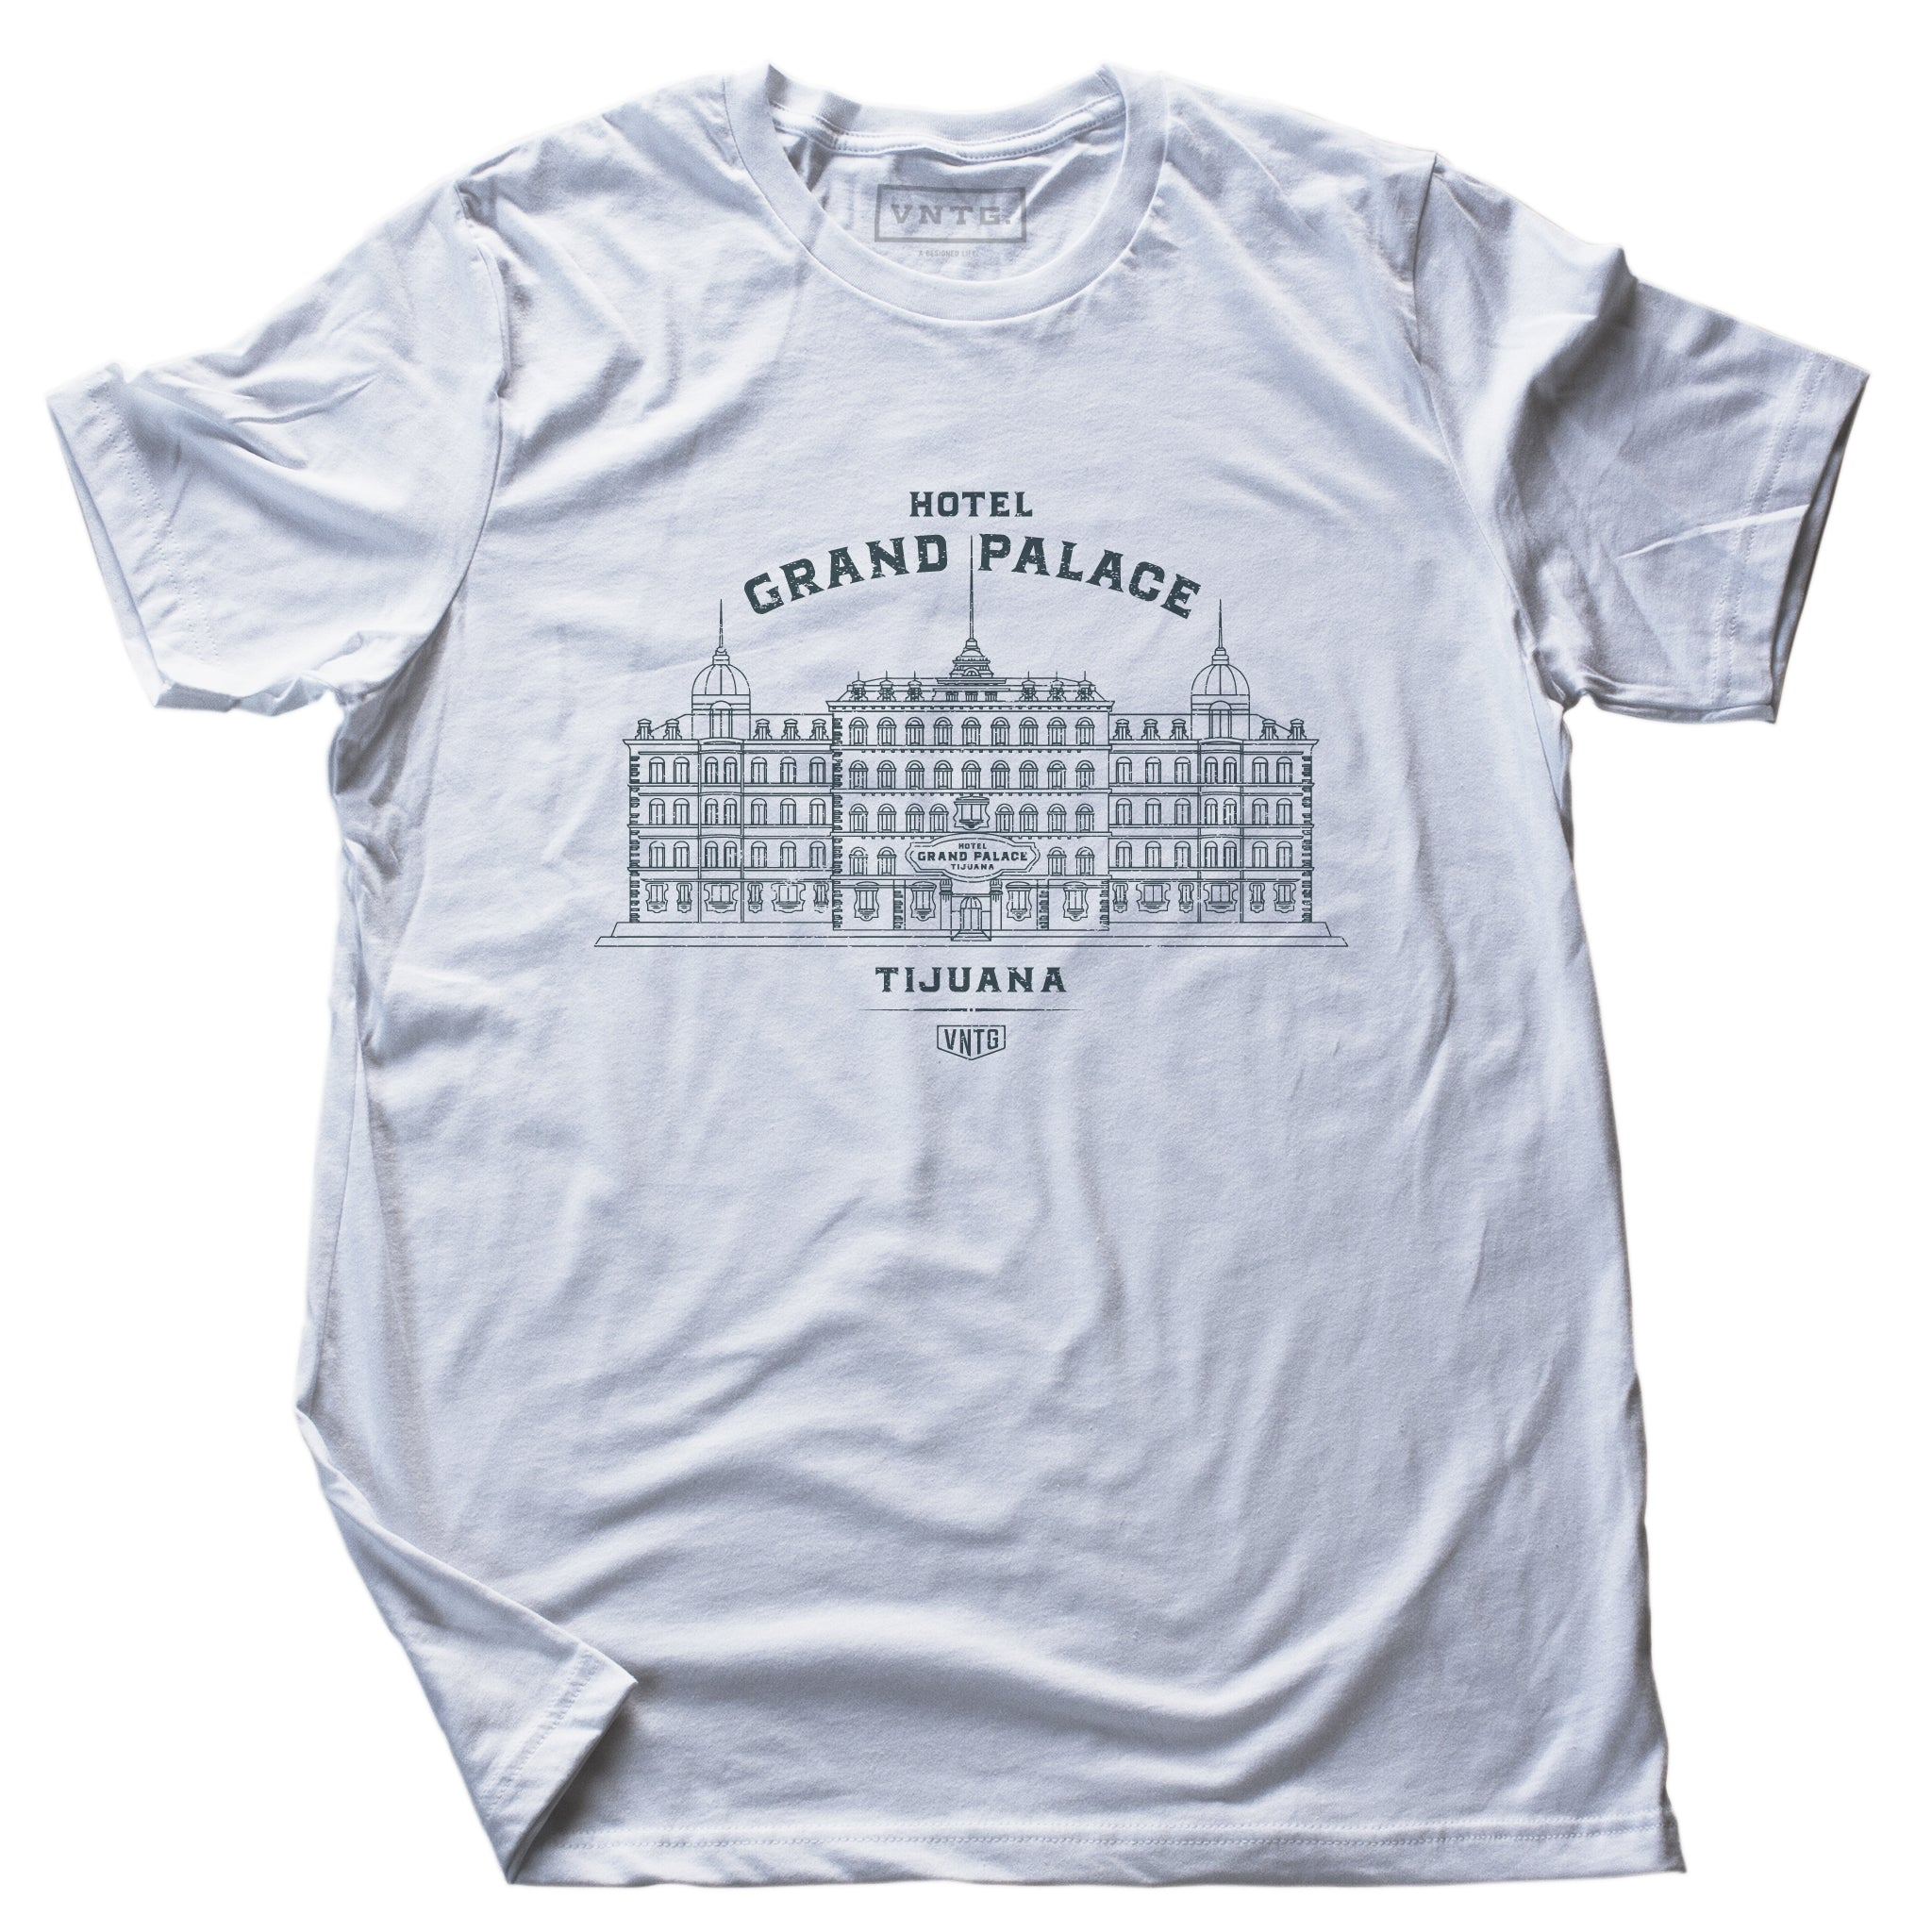 A vintage-inspired retro t-shirt in white, promoting a fictional, sarcastic grand hotel in Tijuana, Mexico. From fashion brand VNTG, from wolfsaint.net The shirt depicts an elegant old hotel in an intricate line drawing. Inspired by the films of Wes Anderson, including The Grand Budapest Hotel.